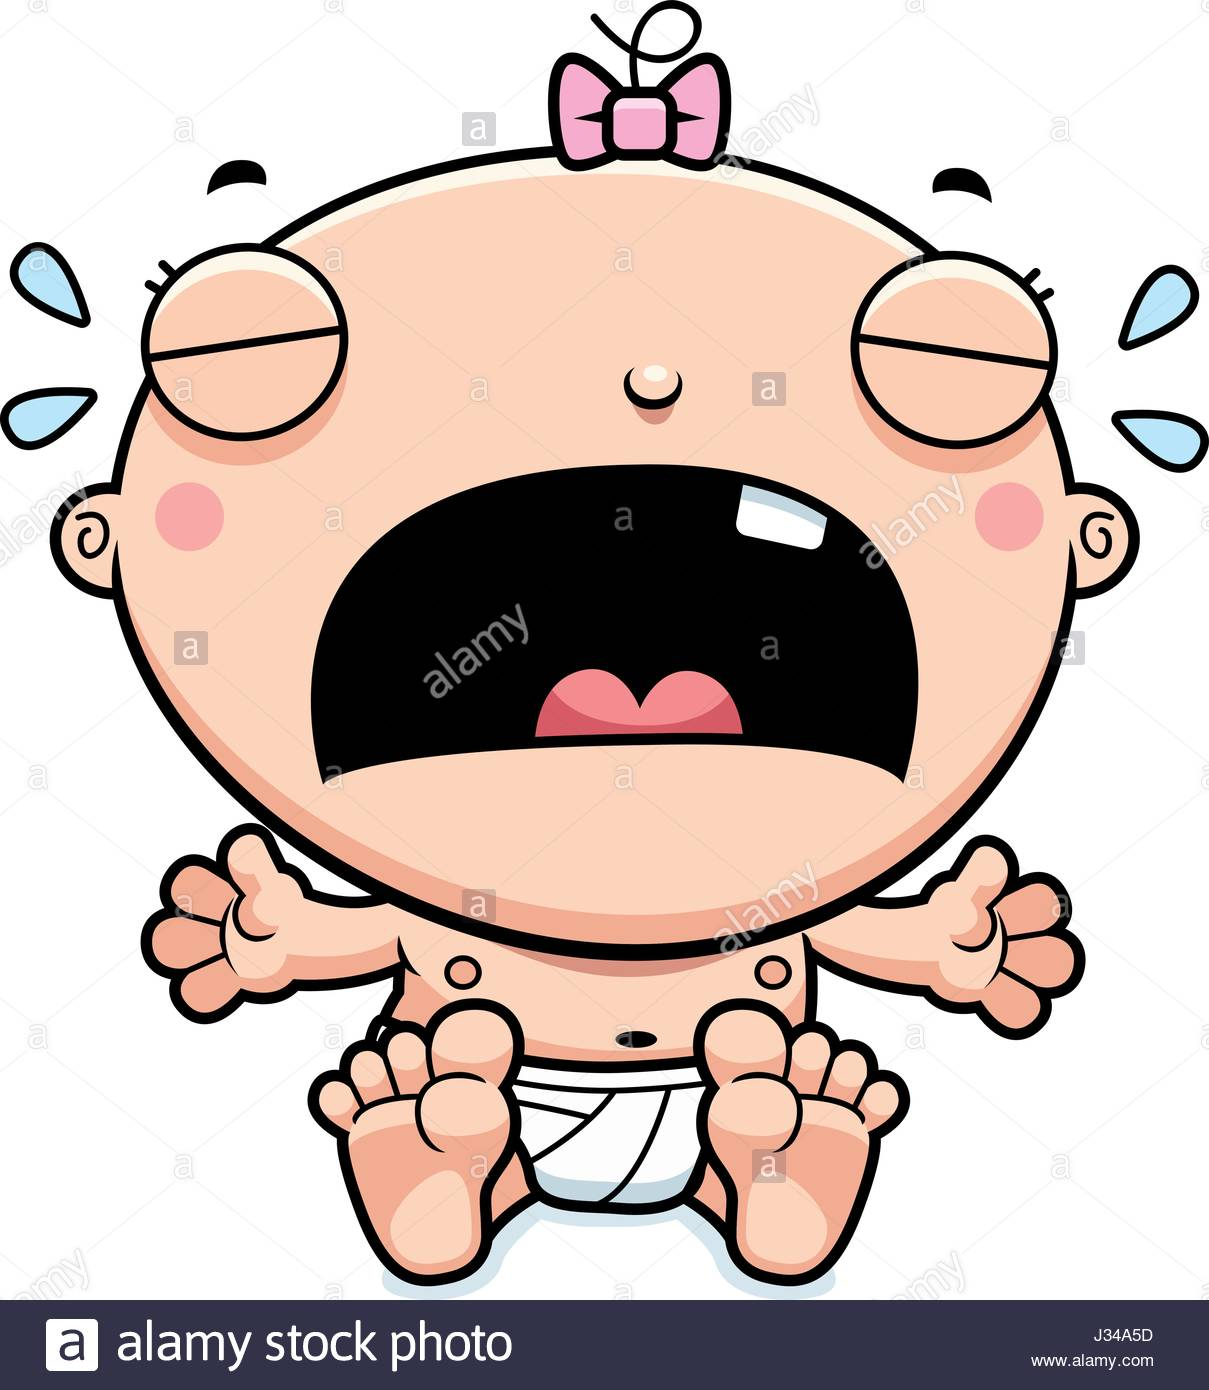 1209x1390 A Cartoon Illustration Of A Baby Girl Crying Stock Vector Art